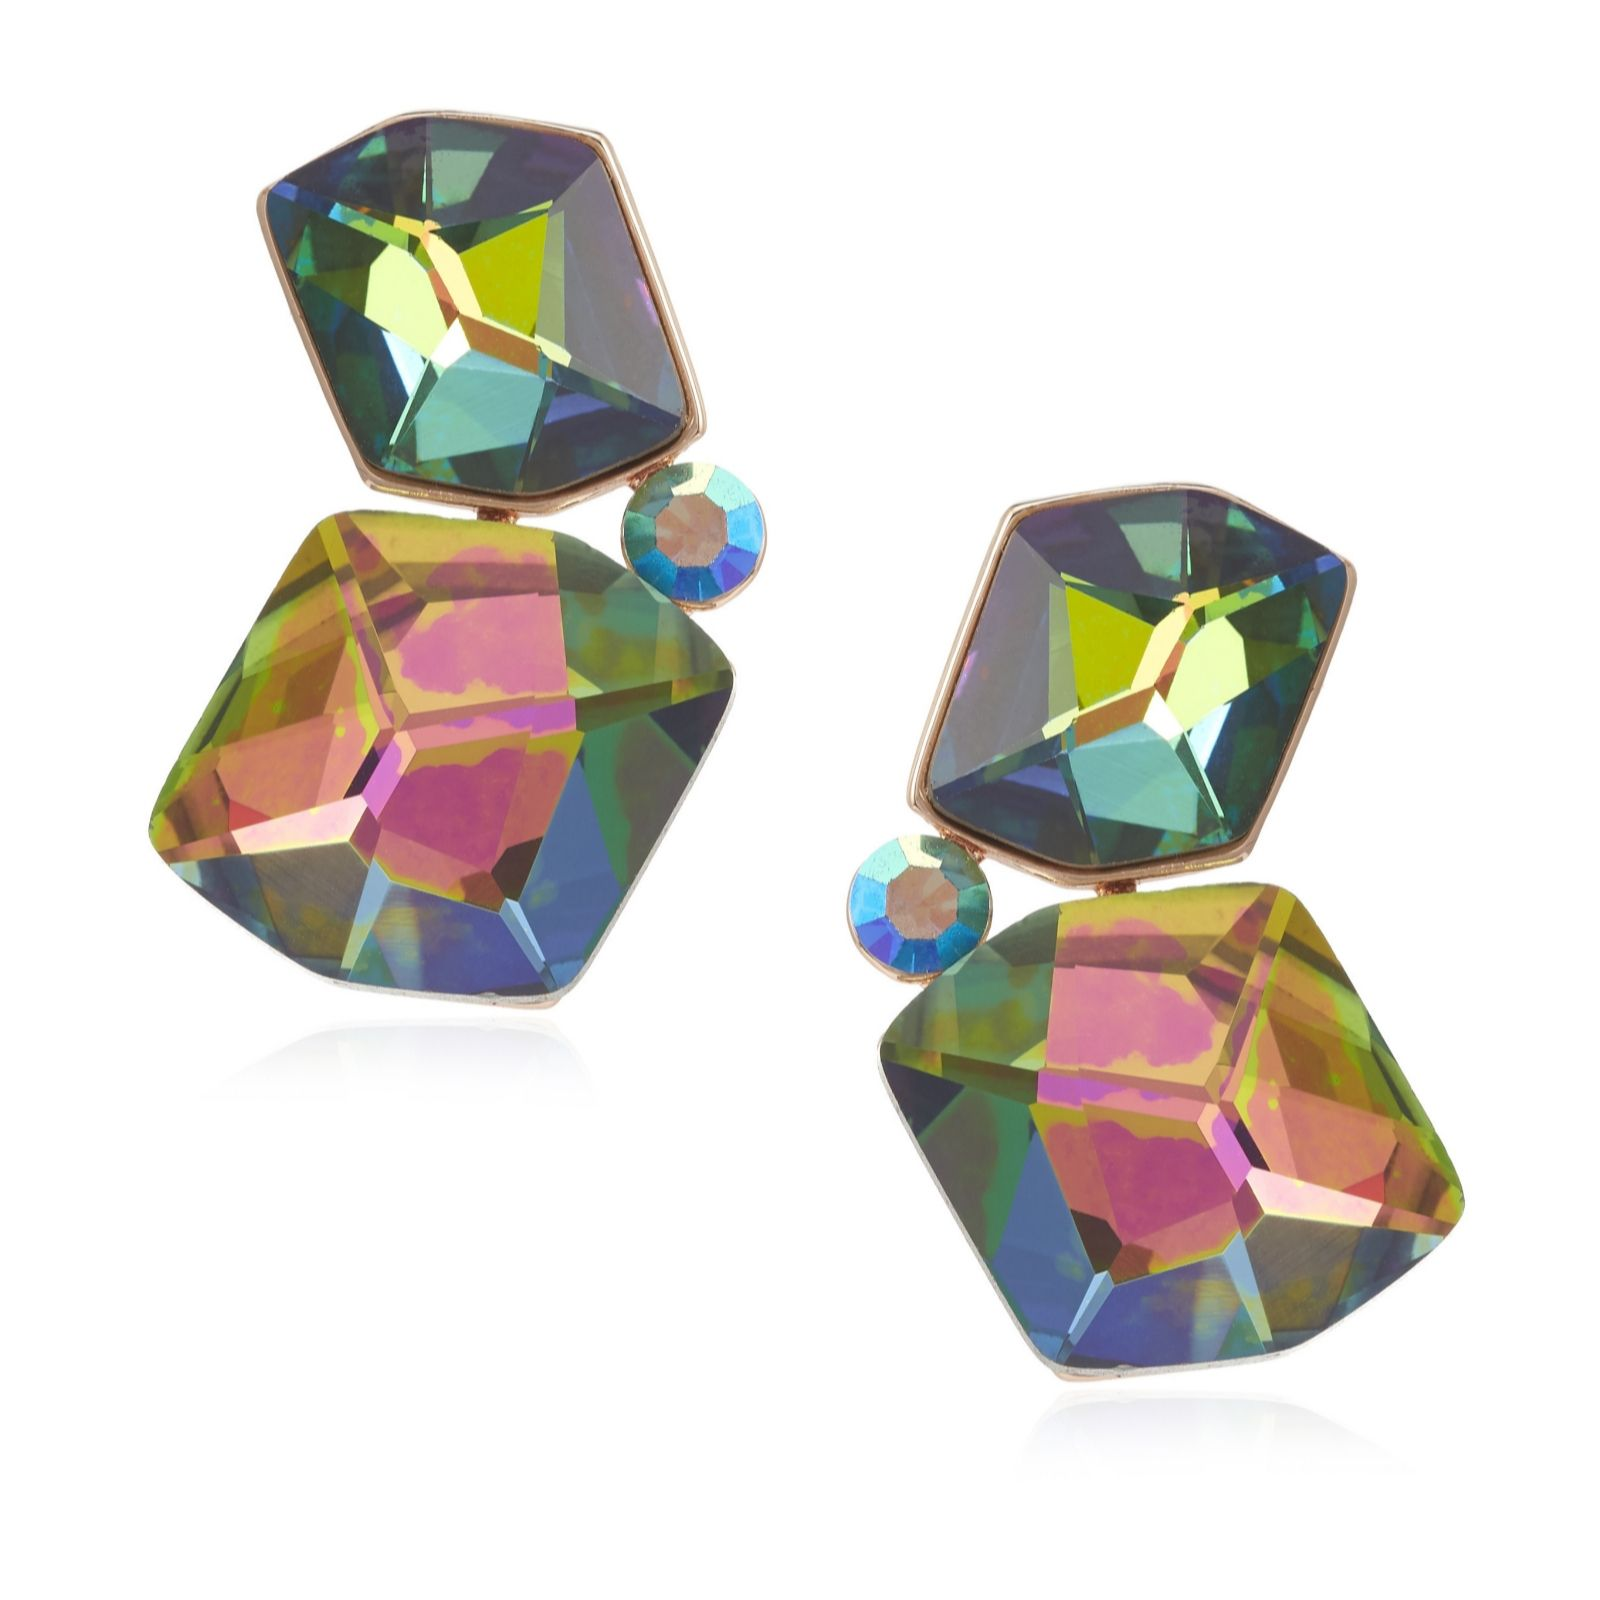 a9b8725d2 Butler & Wilson Chunky Stones Drop Earrings - QVC UK